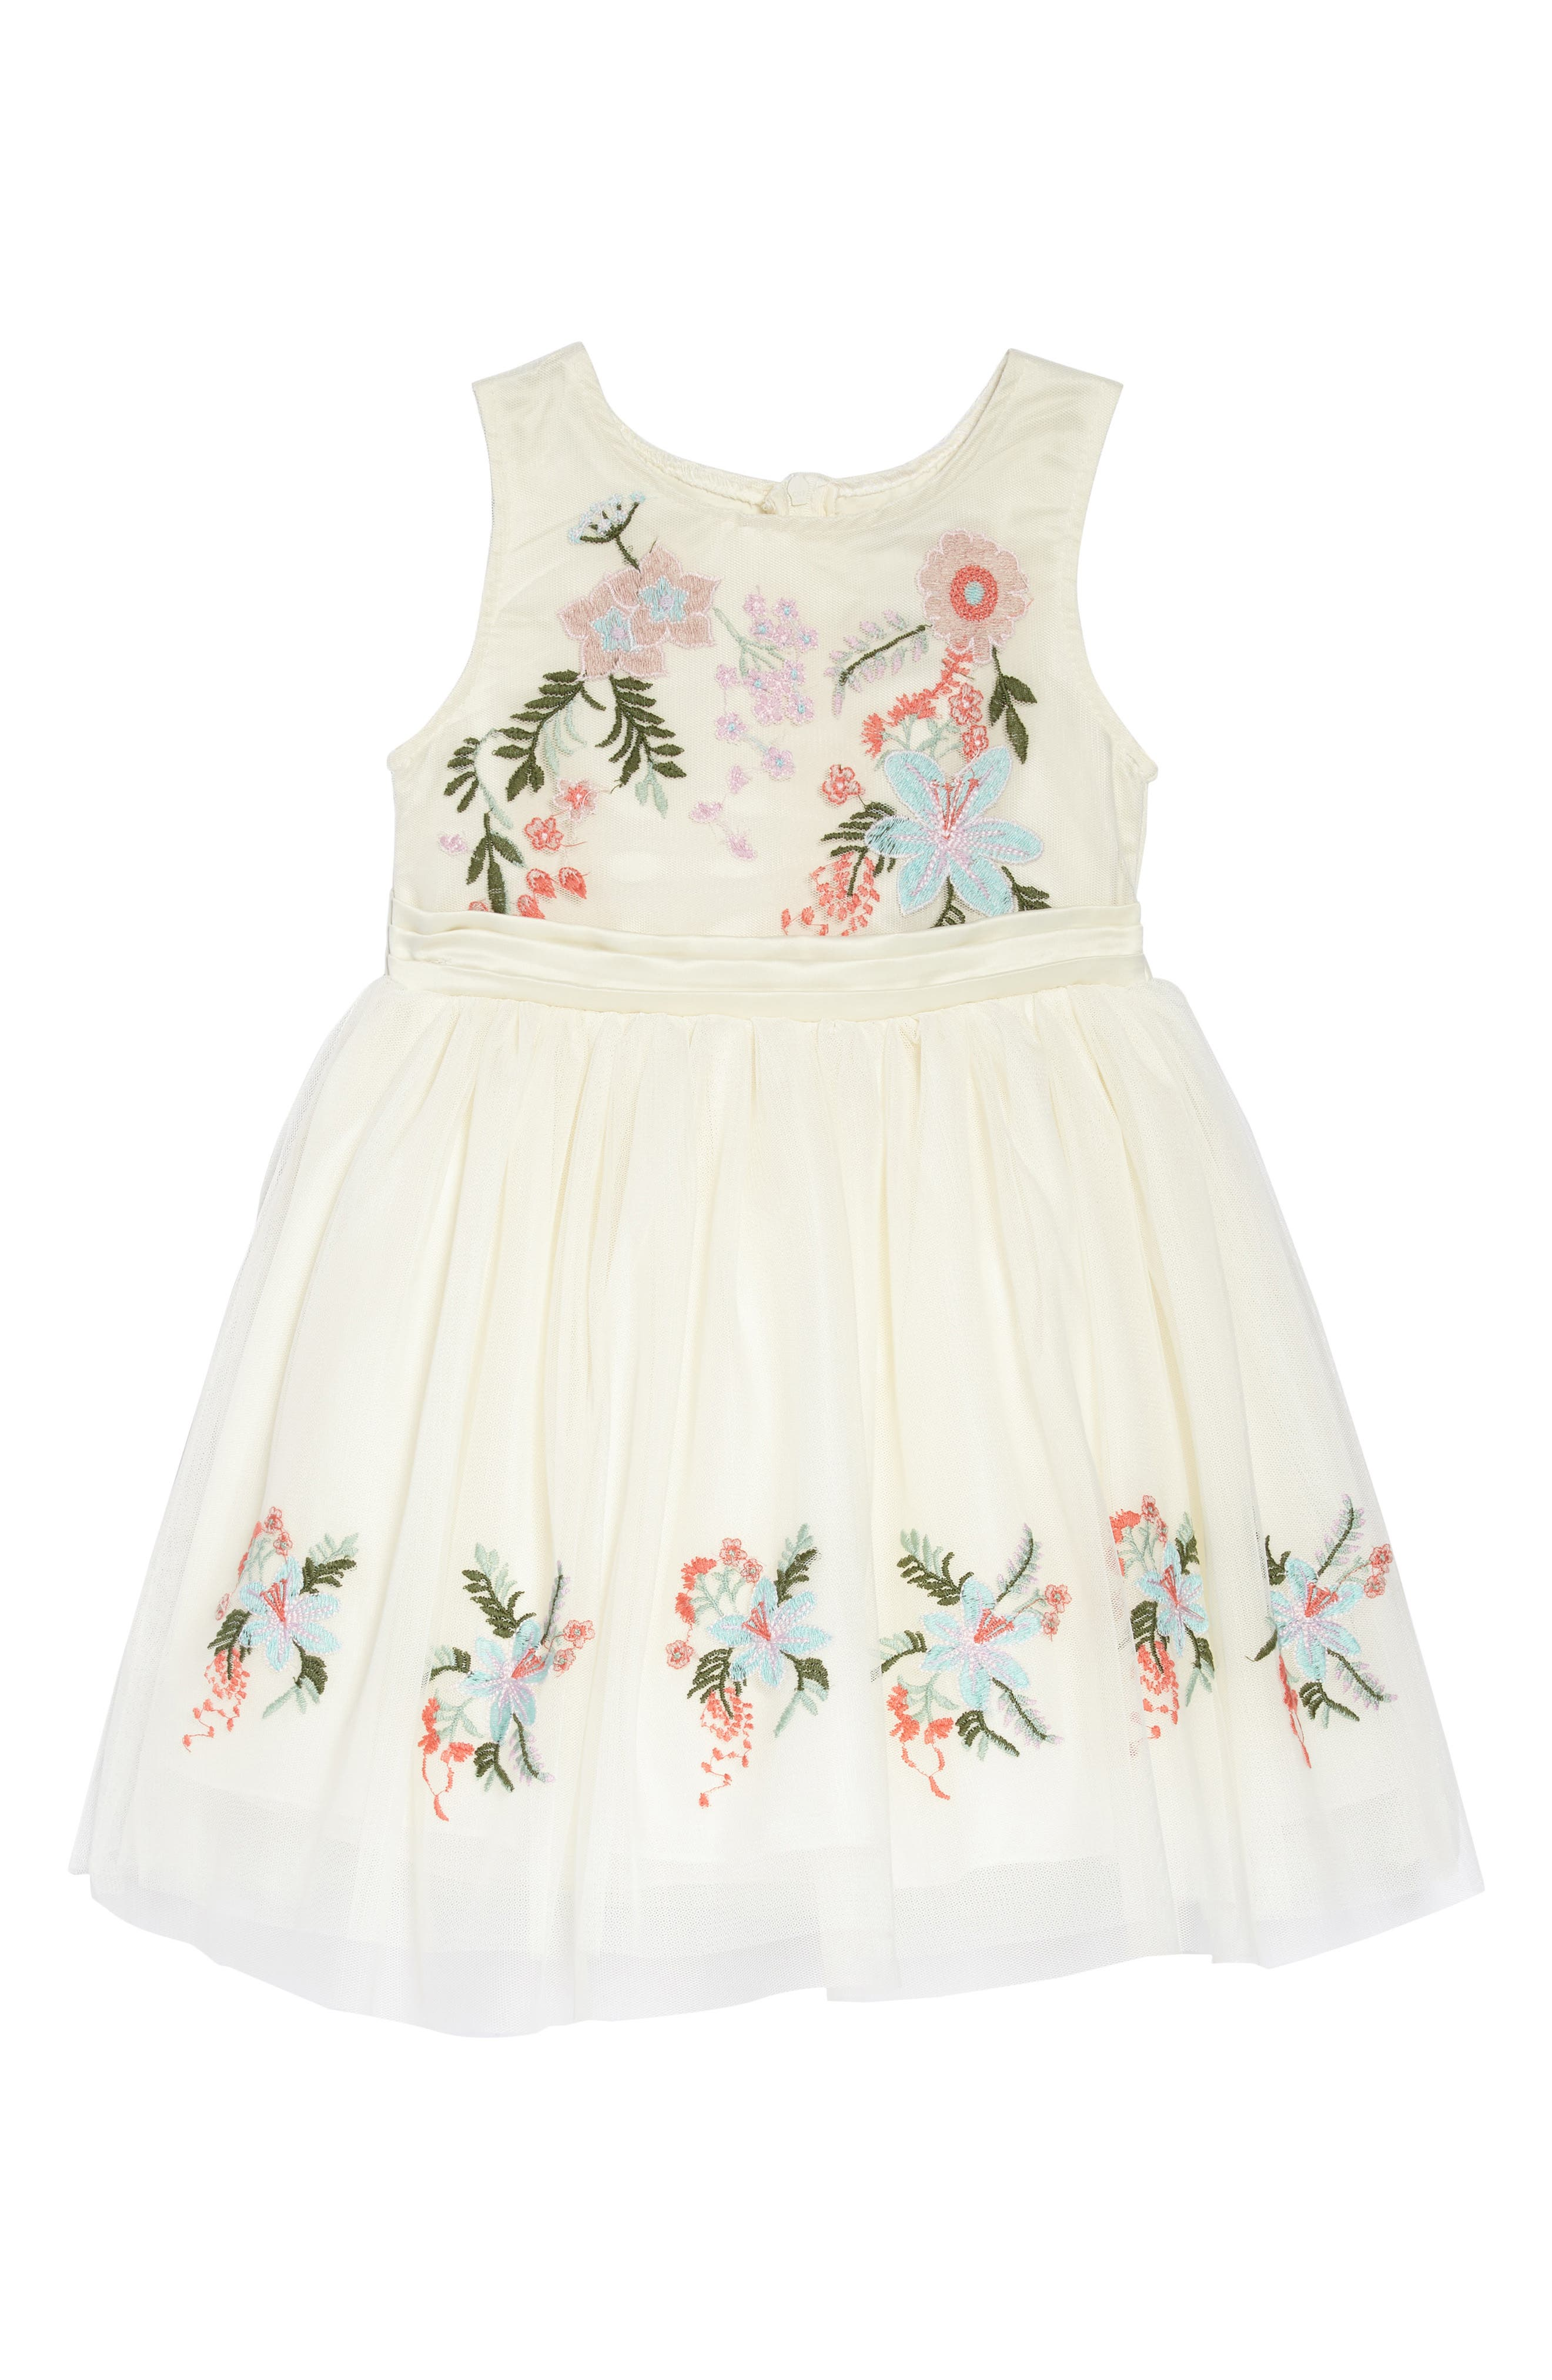 Flower Embroidered Party Dress,                             Main thumbnail 1, color,                             Off-White